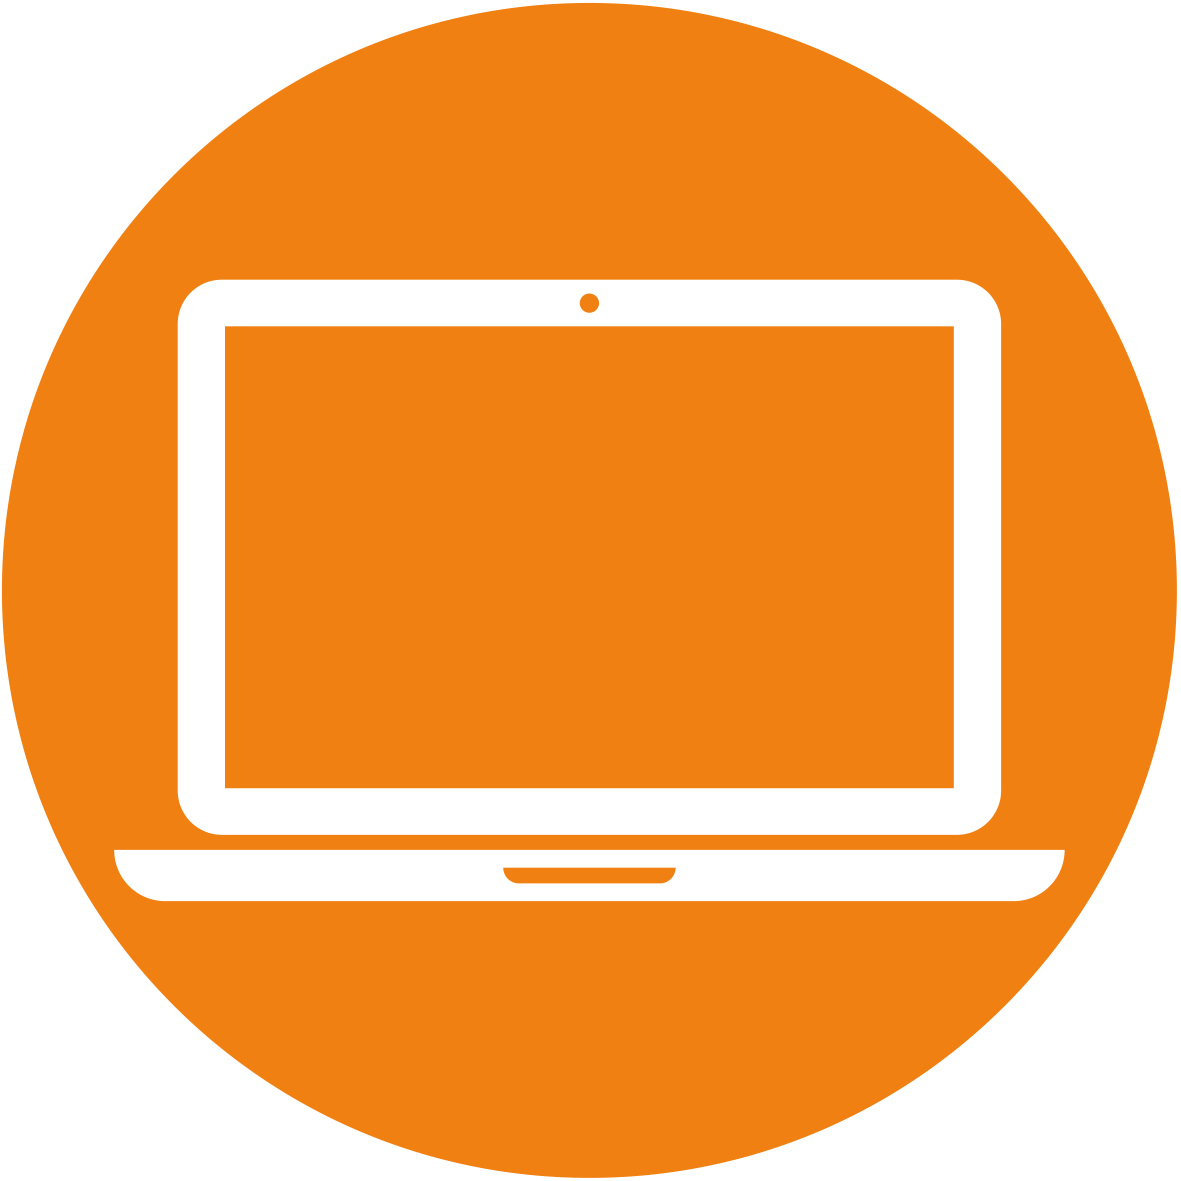 Web (orange).png